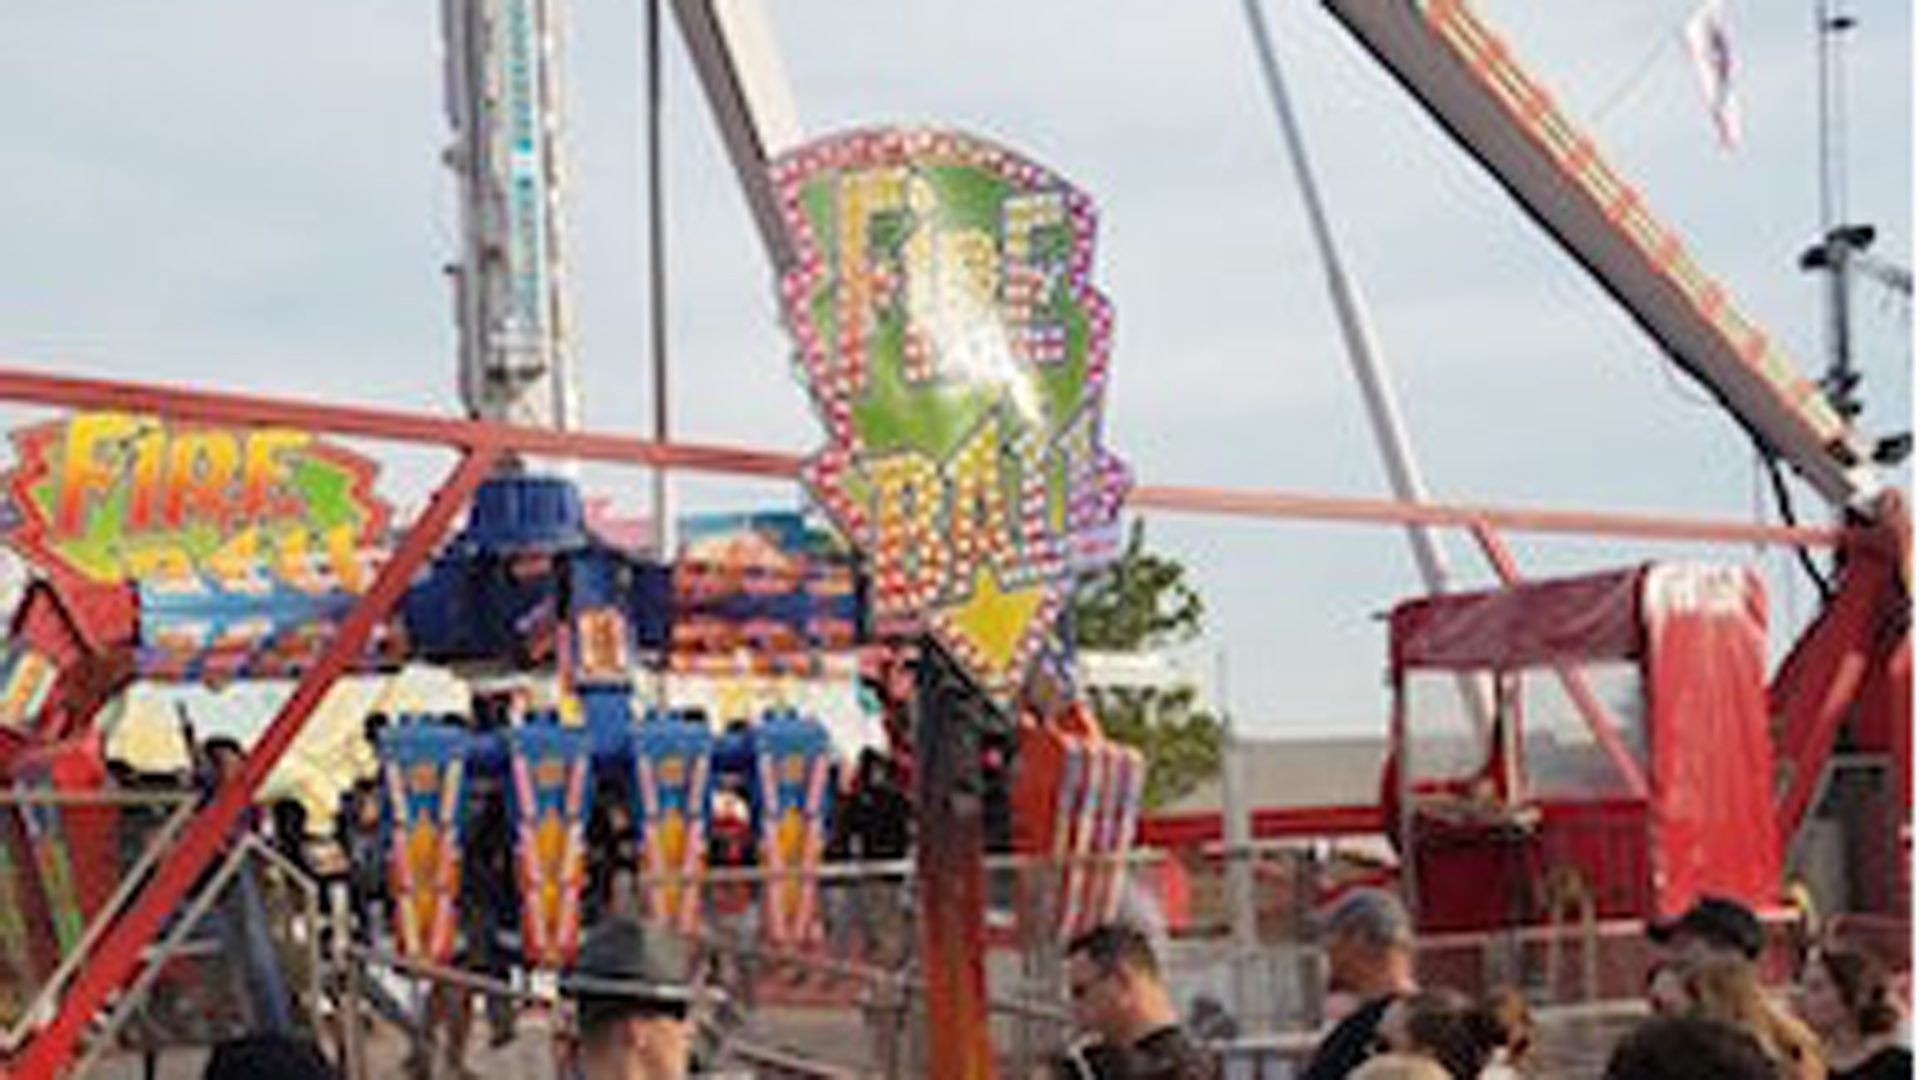 """""""Fire Ball"""" is the ride that broke apart and left one person dead at the Ohio State Fair on July 26, 2017. (Credit: Justin Eckard via Twitter)"""